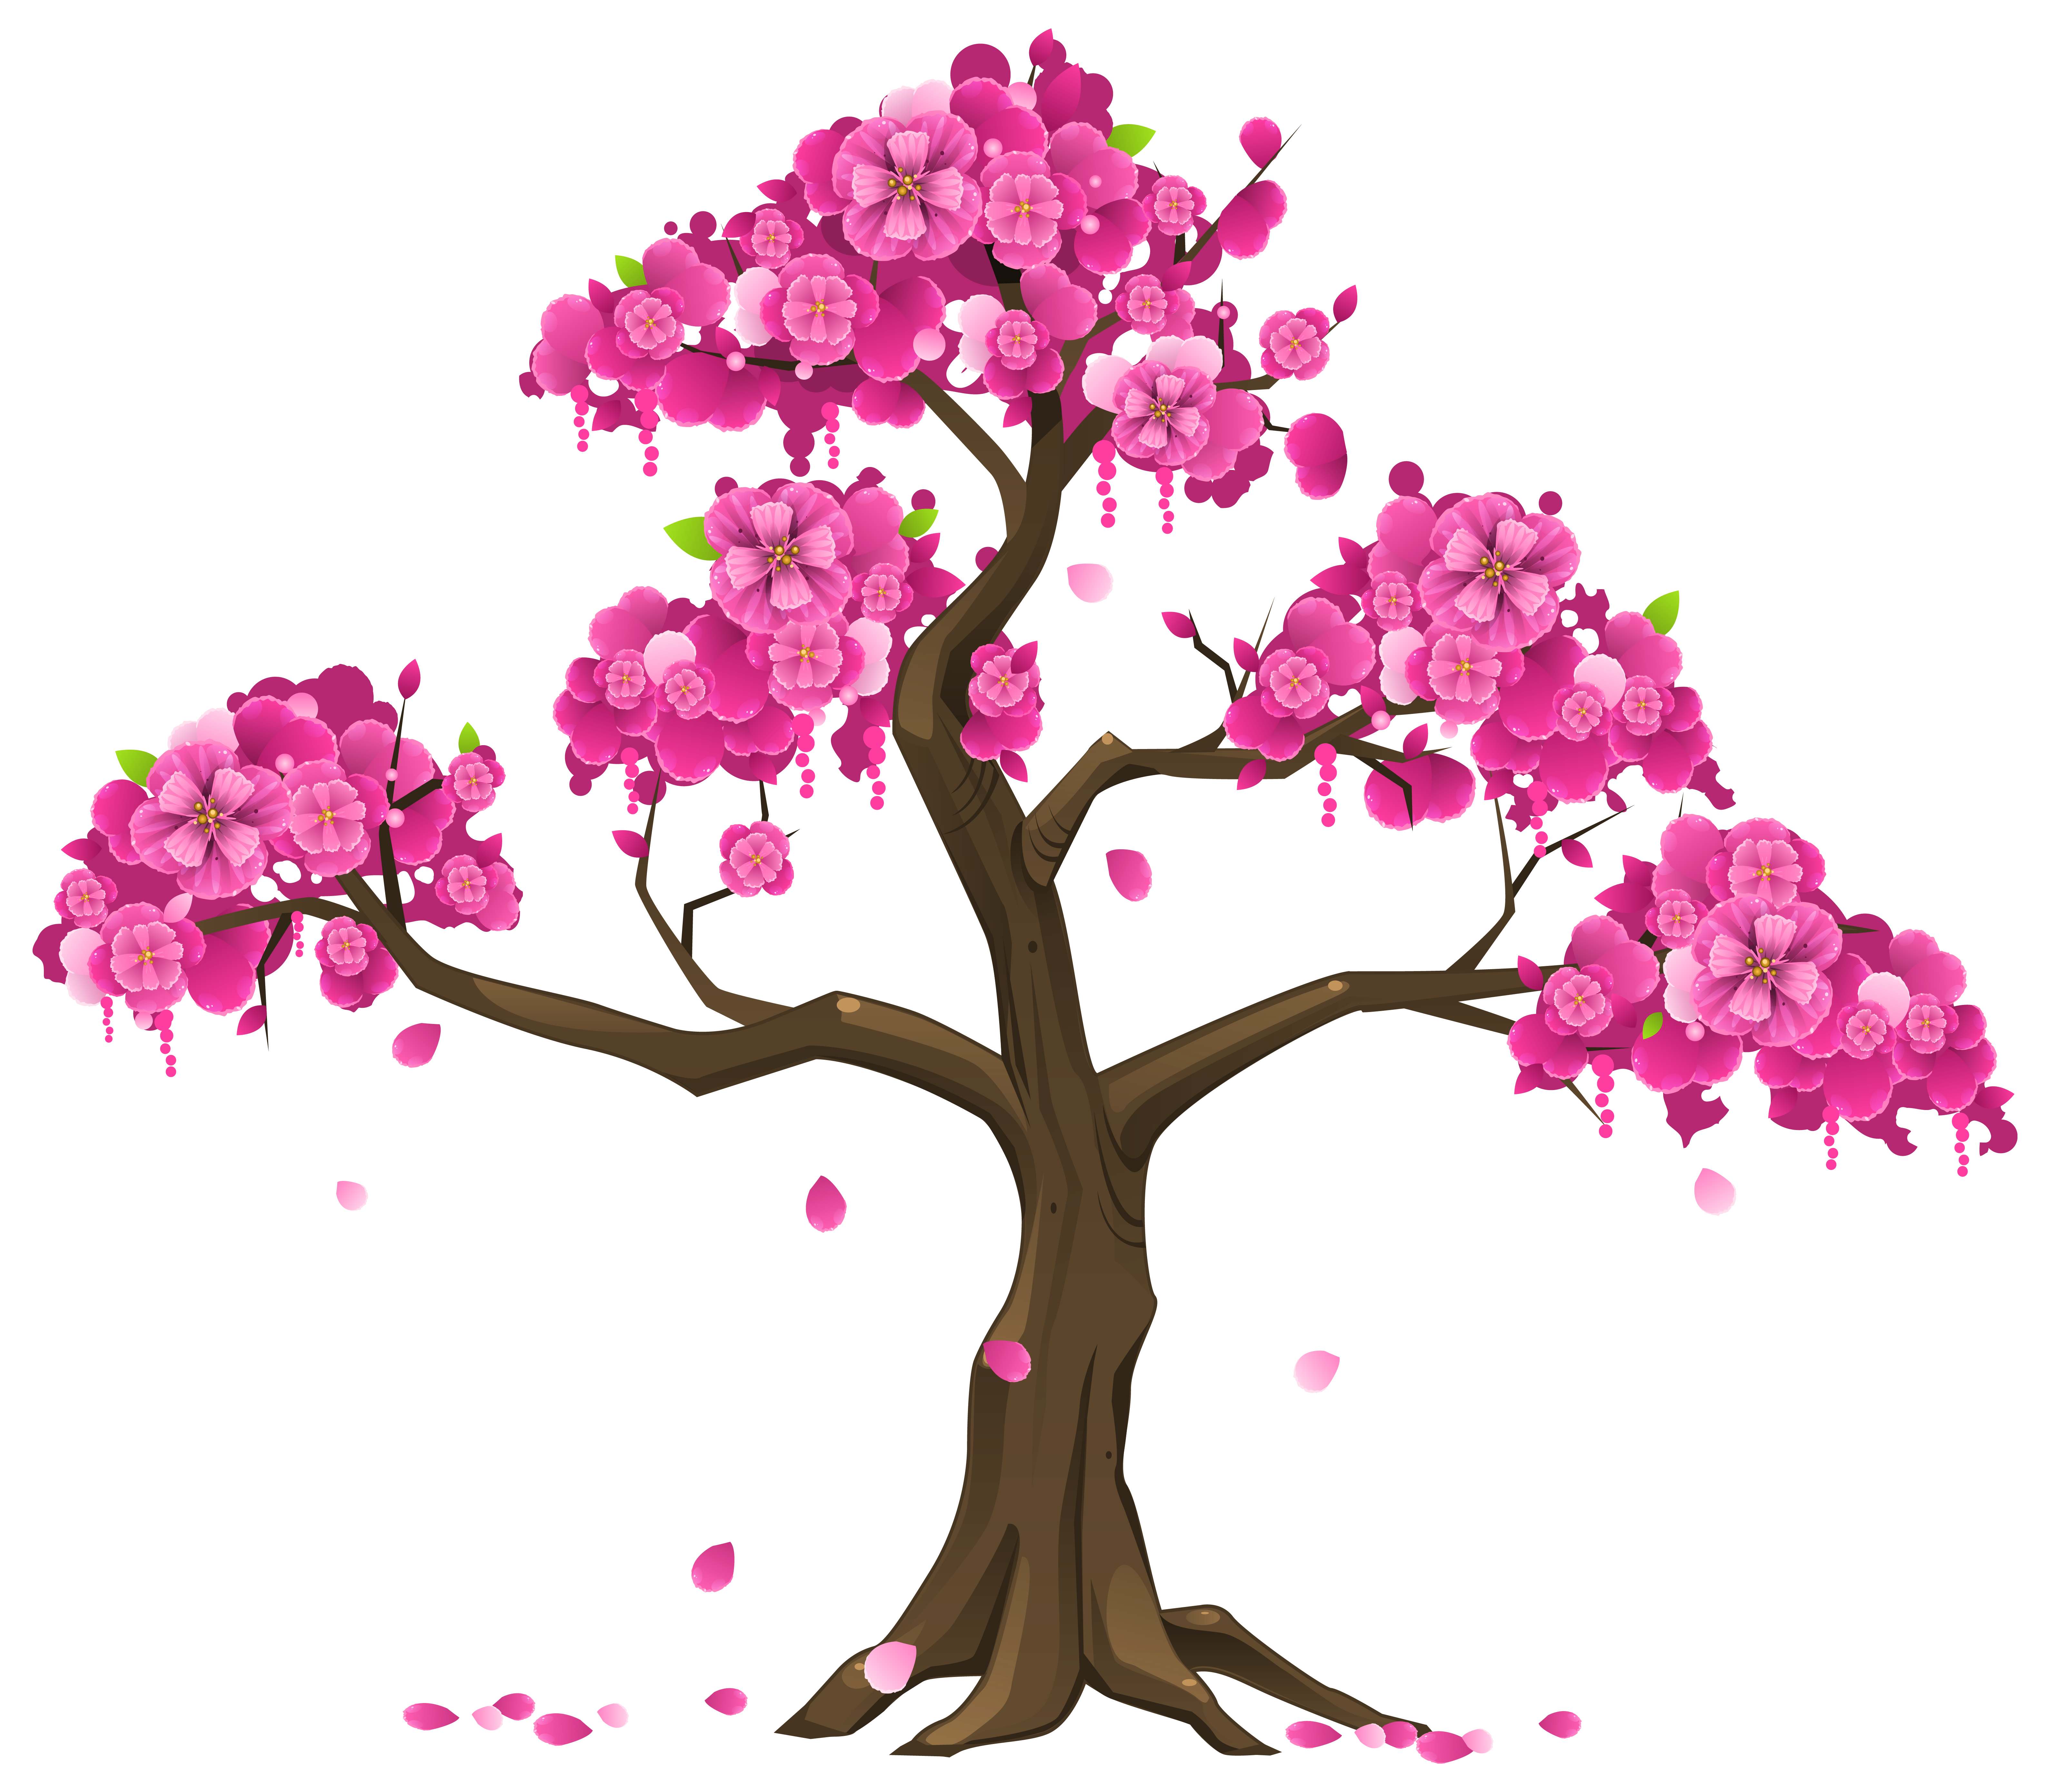 Png Tree With White And Pink Flowers - Pink tree svg library download - RR collections